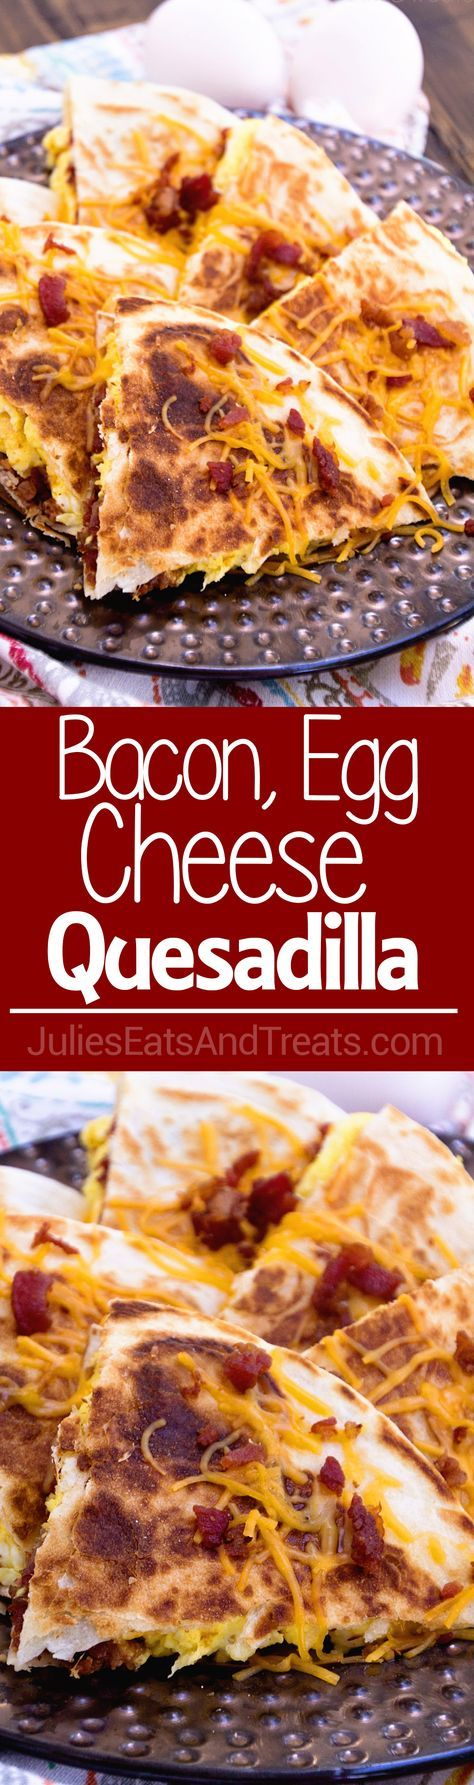 Bacon, Egg & Cheese Quesadillas Recipe ~ Crispy, Pan Fried Tortillas Stuffed with Bacon, Egg & Cheese! Makes the Perfect Quick, Easy Breakfast Recipe! on http://MyRecipeMagic.com